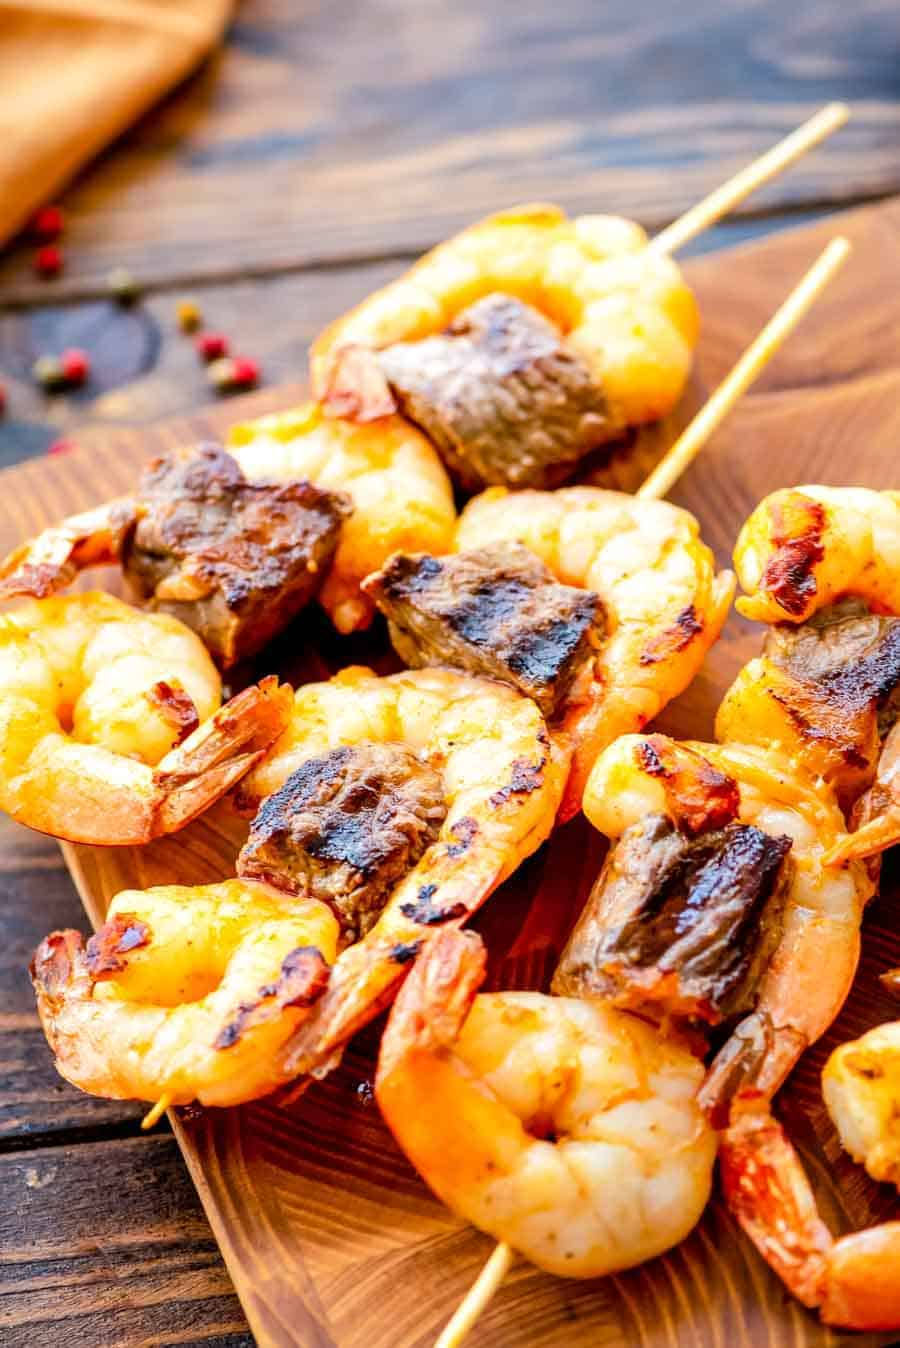 Grilled Steak and Shrimp Kabobs on cutting board